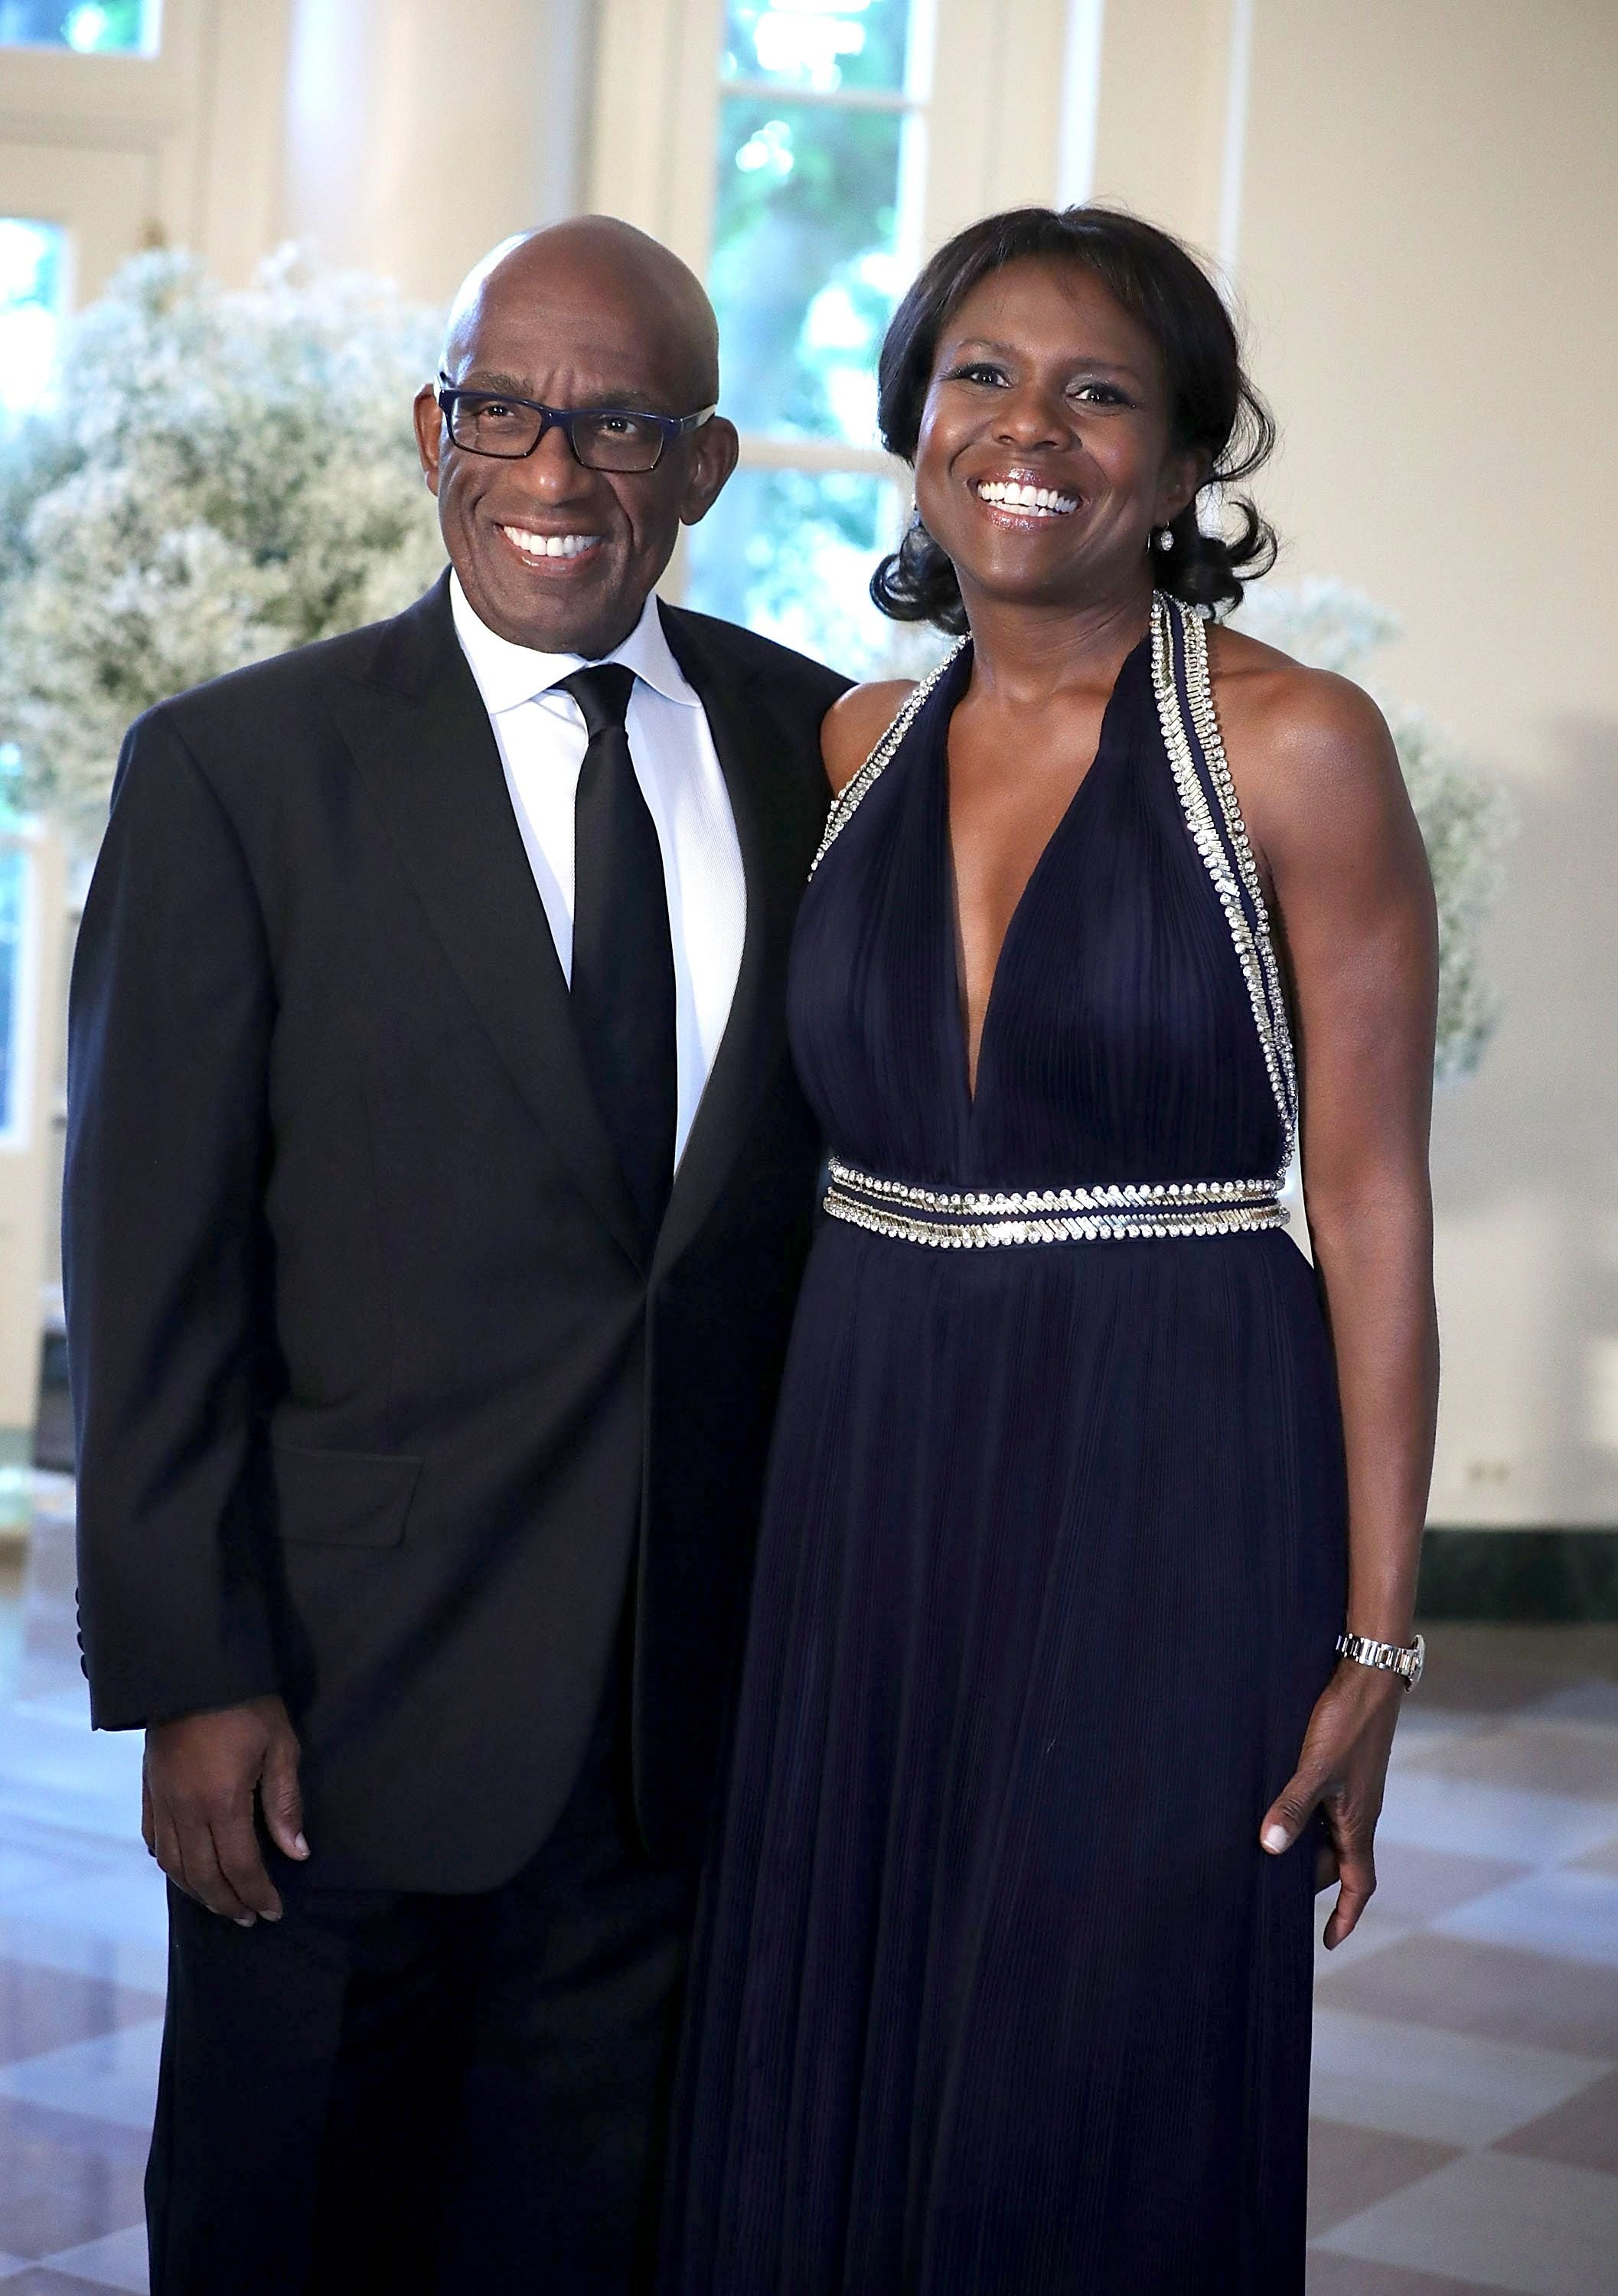 Weather reporter Al Roker and wife Deborah Roberts arrive at the 2016 Nordic State Dinner of former US President Barack Obama in Washington. | Photo: Getty Images